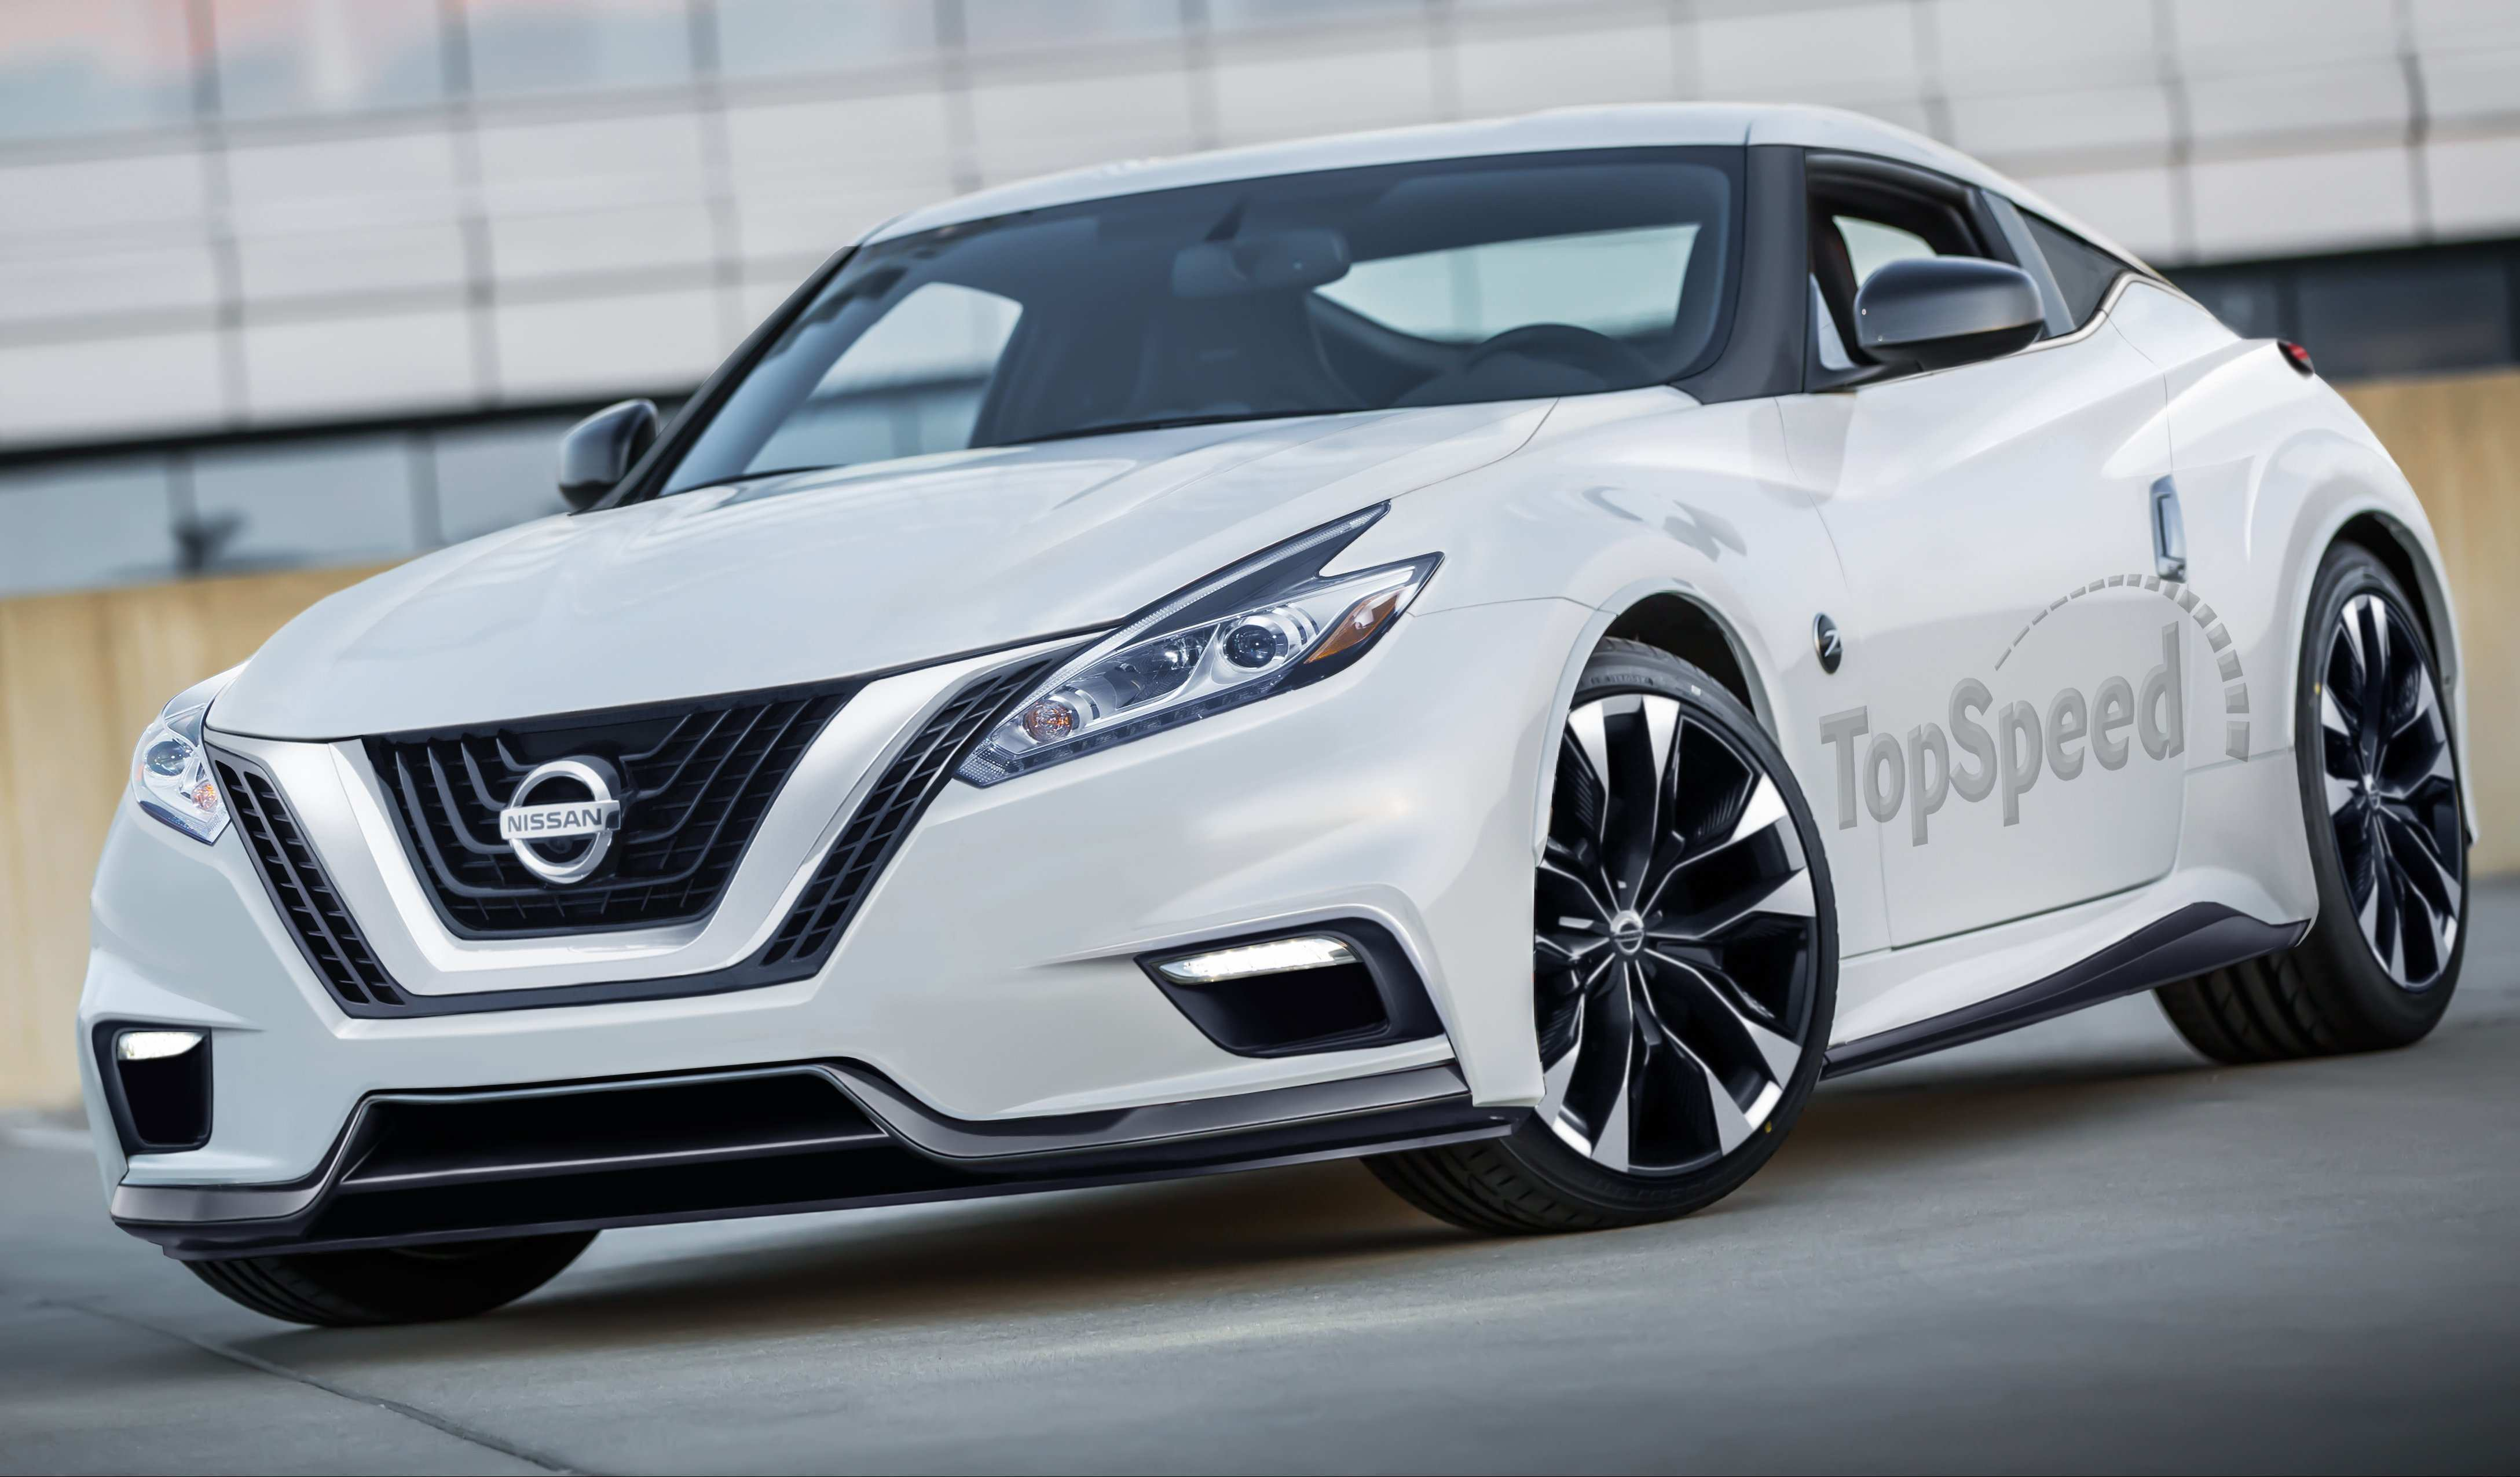 62 The 2020 Nissan Z35 Price and Review with 2020 Nissan Z35